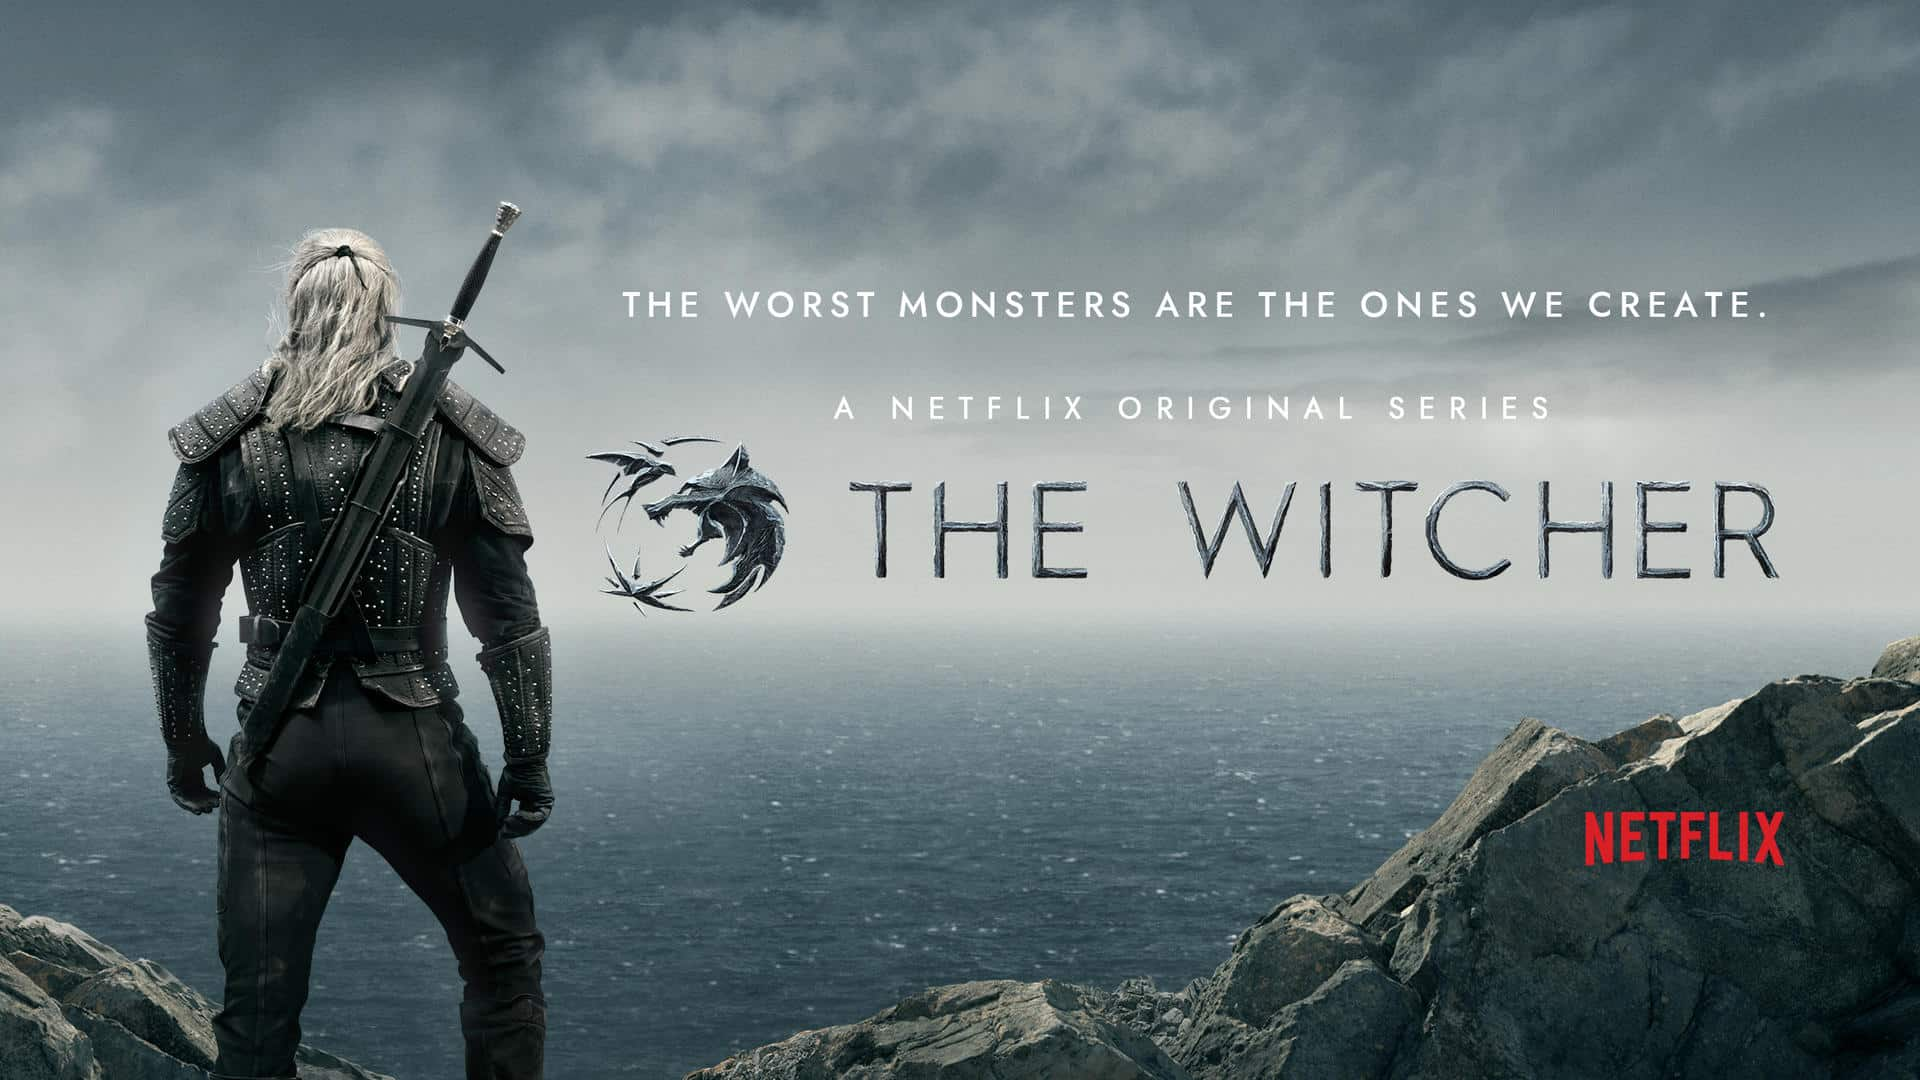 02 NF TheWitcher SocialSkin facebook20190701 5965 xuy0it